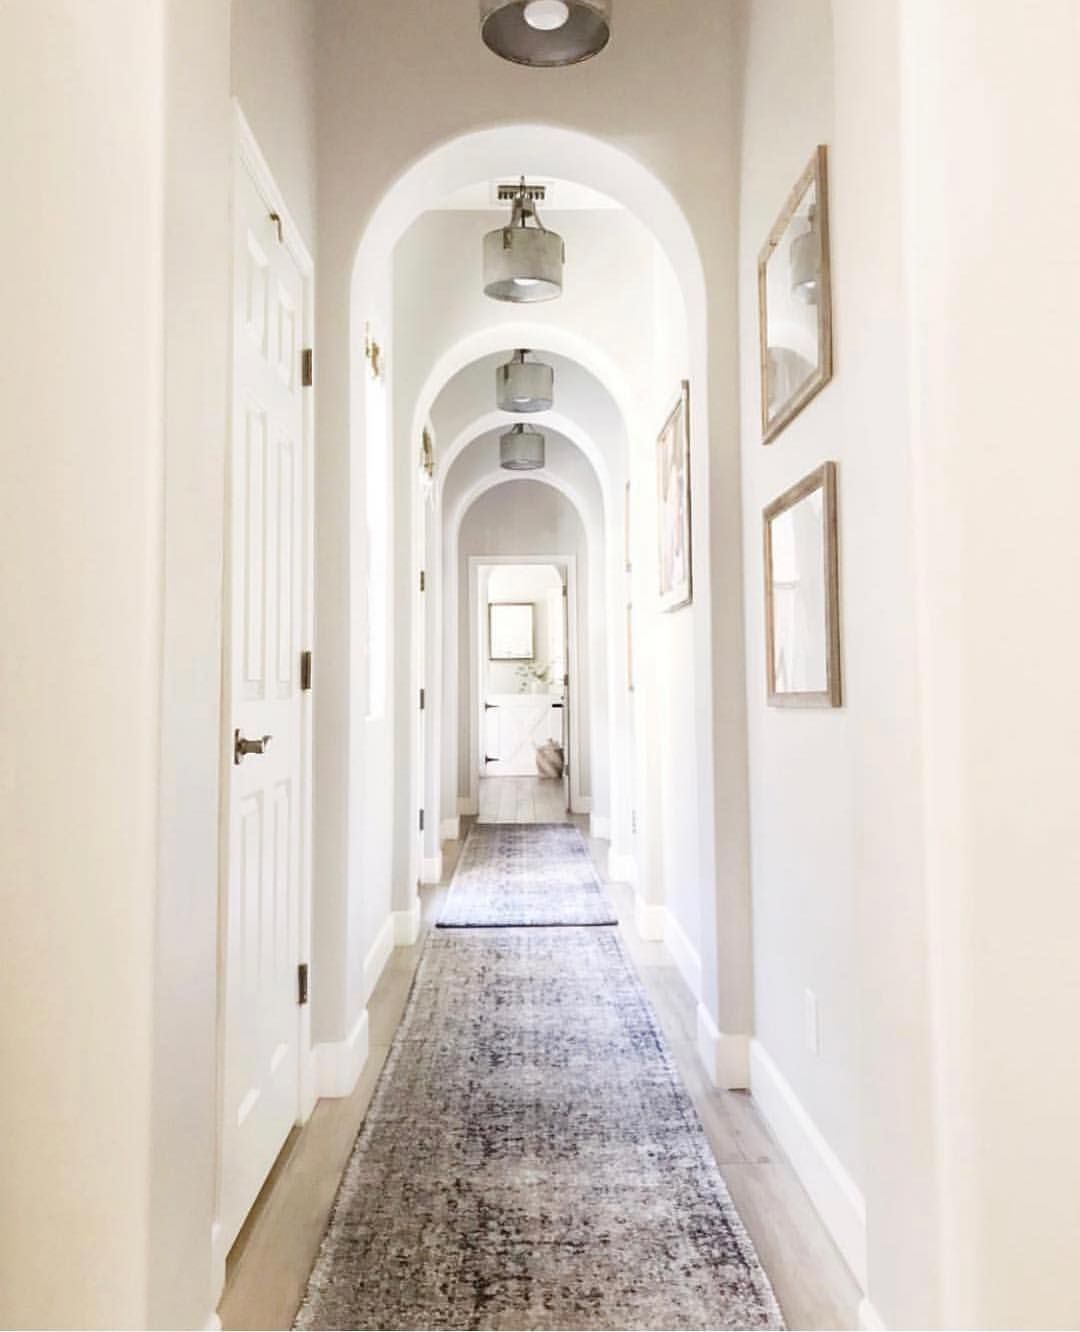 Every Long Hallway Needs A Runner Or Two A Subtle Introduction Like This One Works Well In A Narrow Space Long Hallway Rug Runner Hallway Runner Rug Entryway